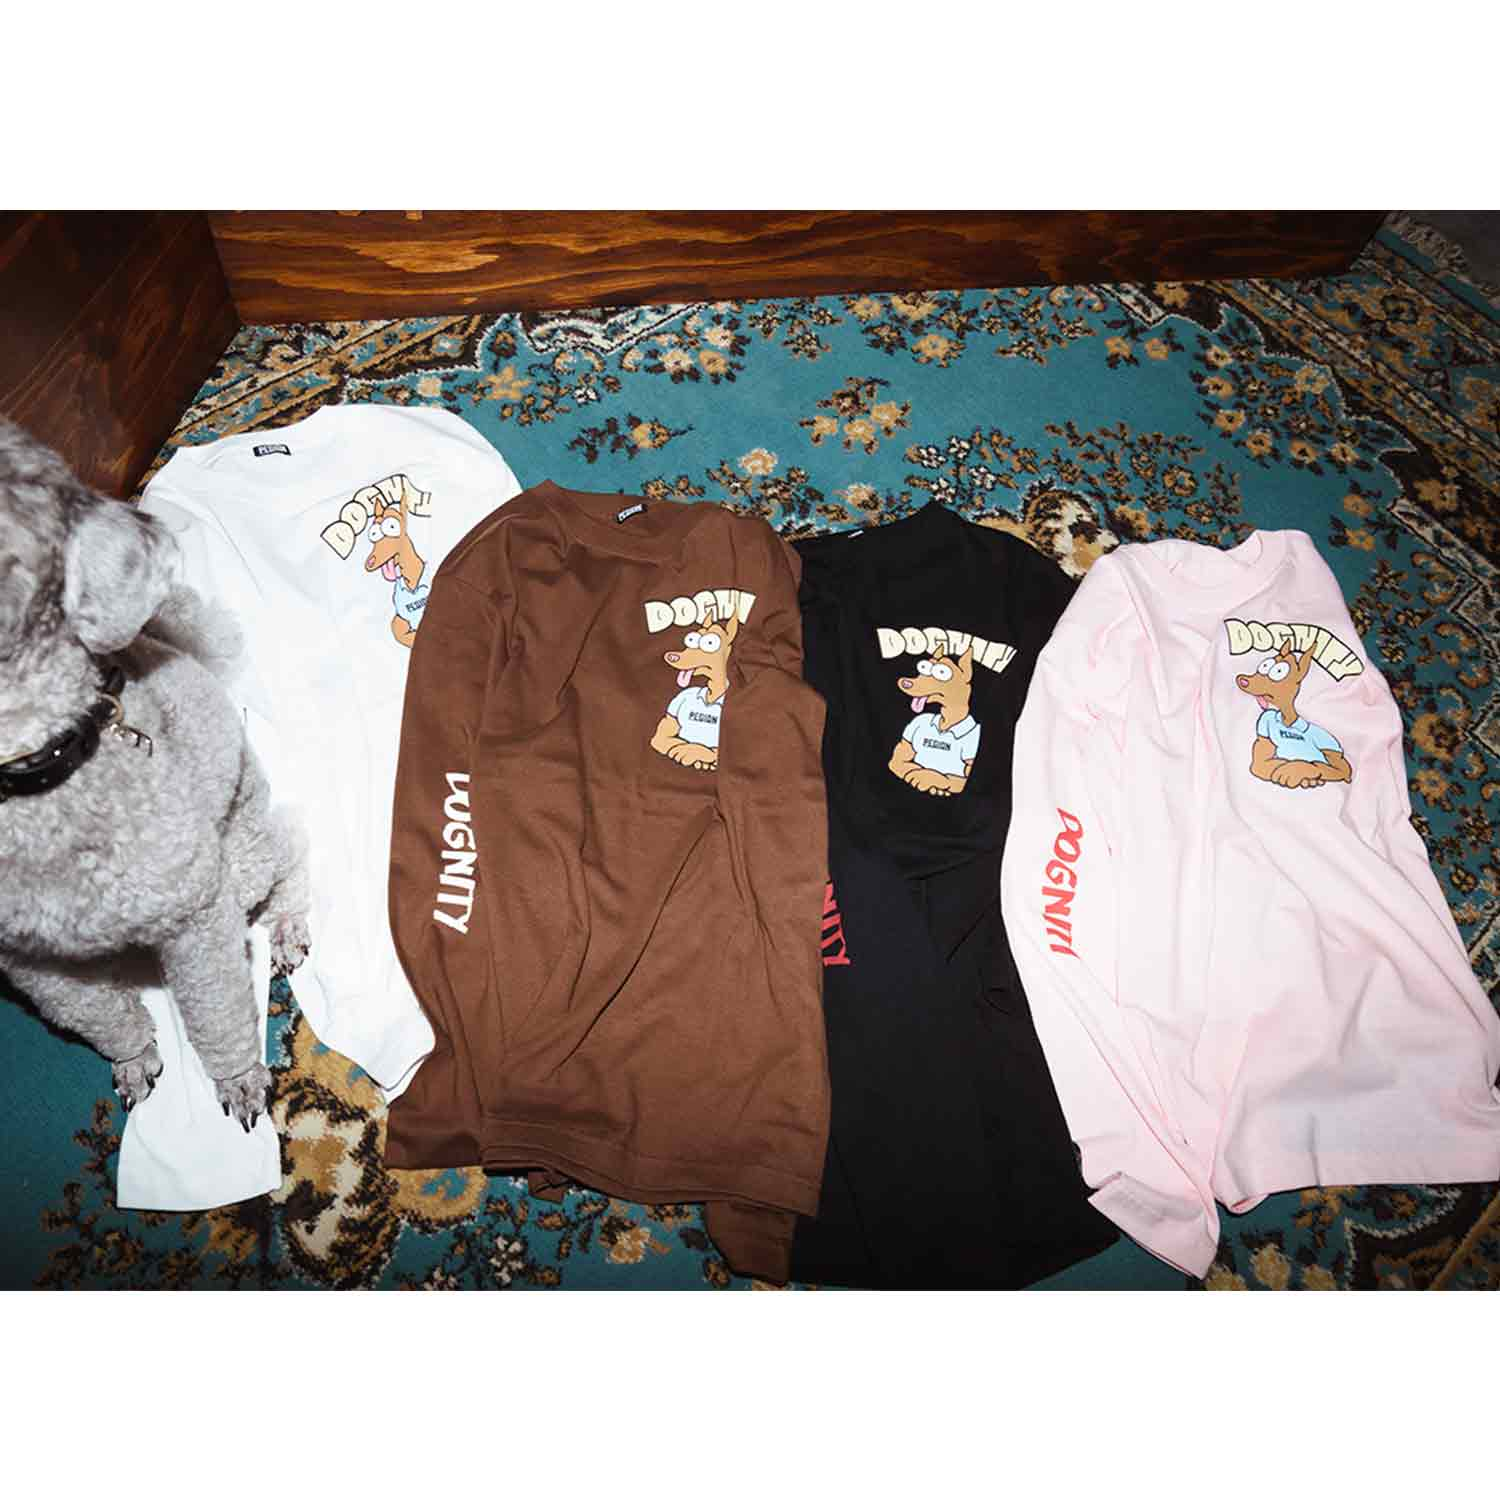 DOGNITY L/S T-SHIRTS - BROWN